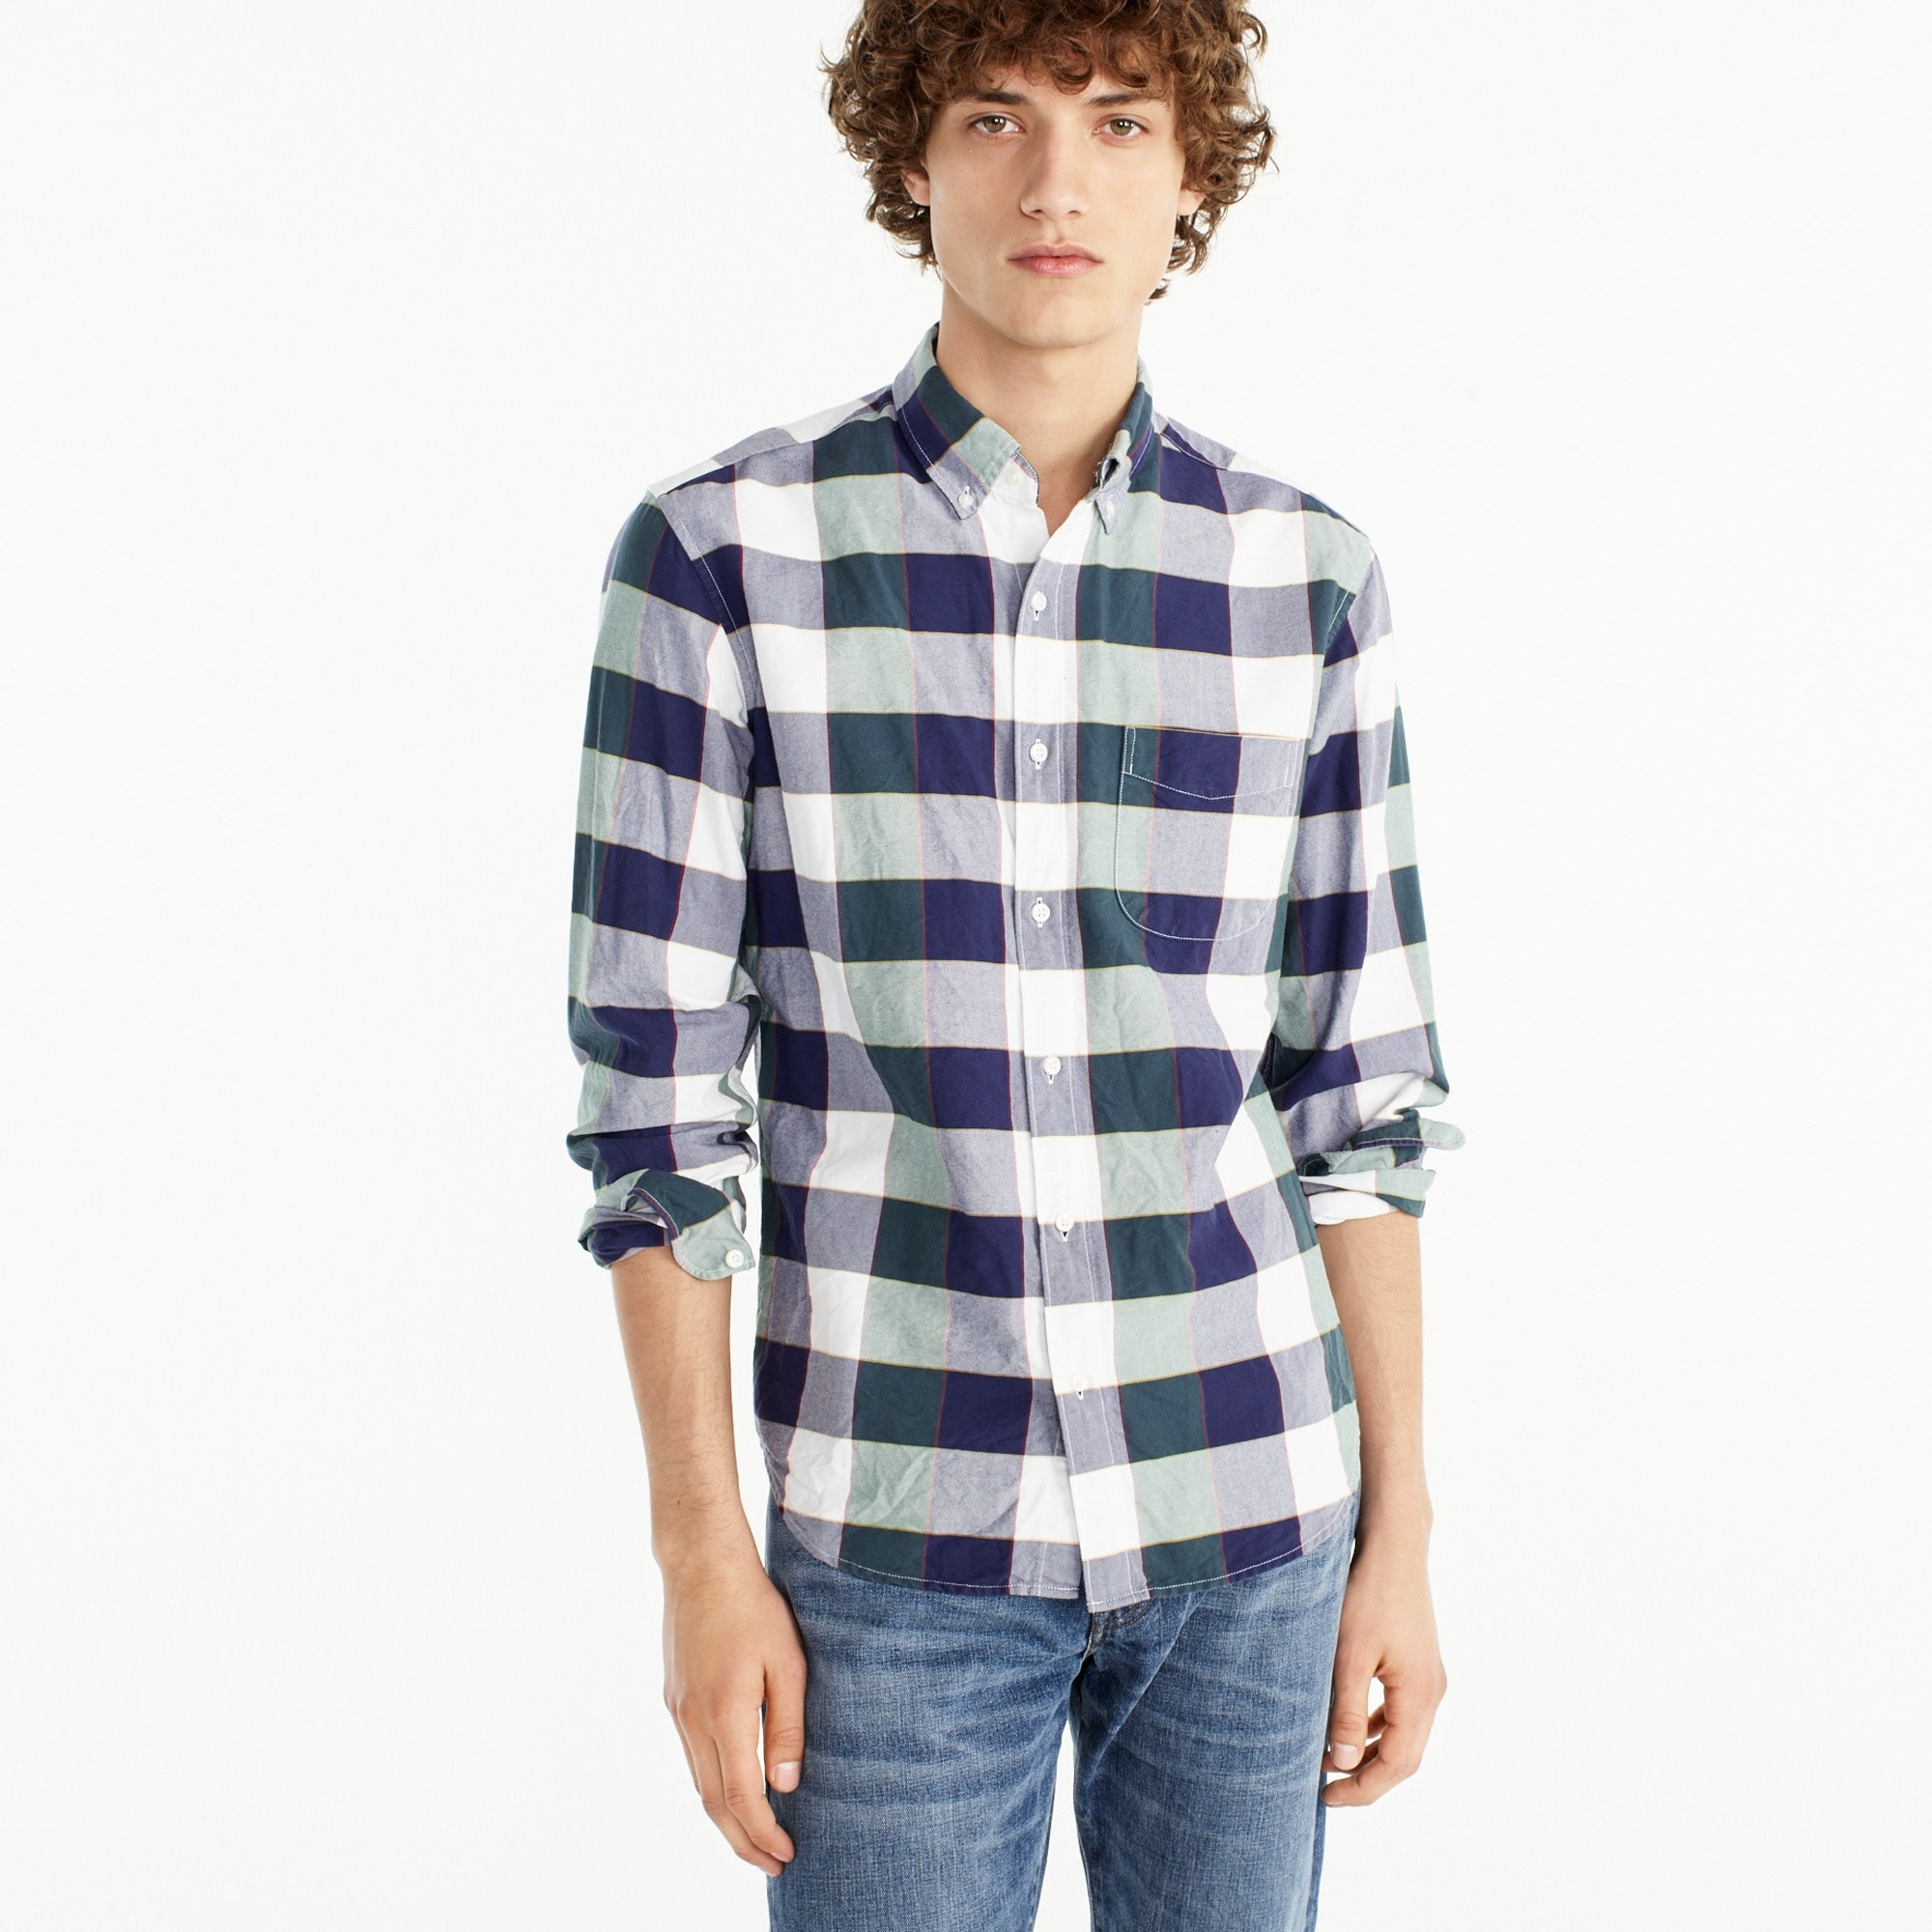 Slim American Pima cotton oxford shirt in green-and-navy check